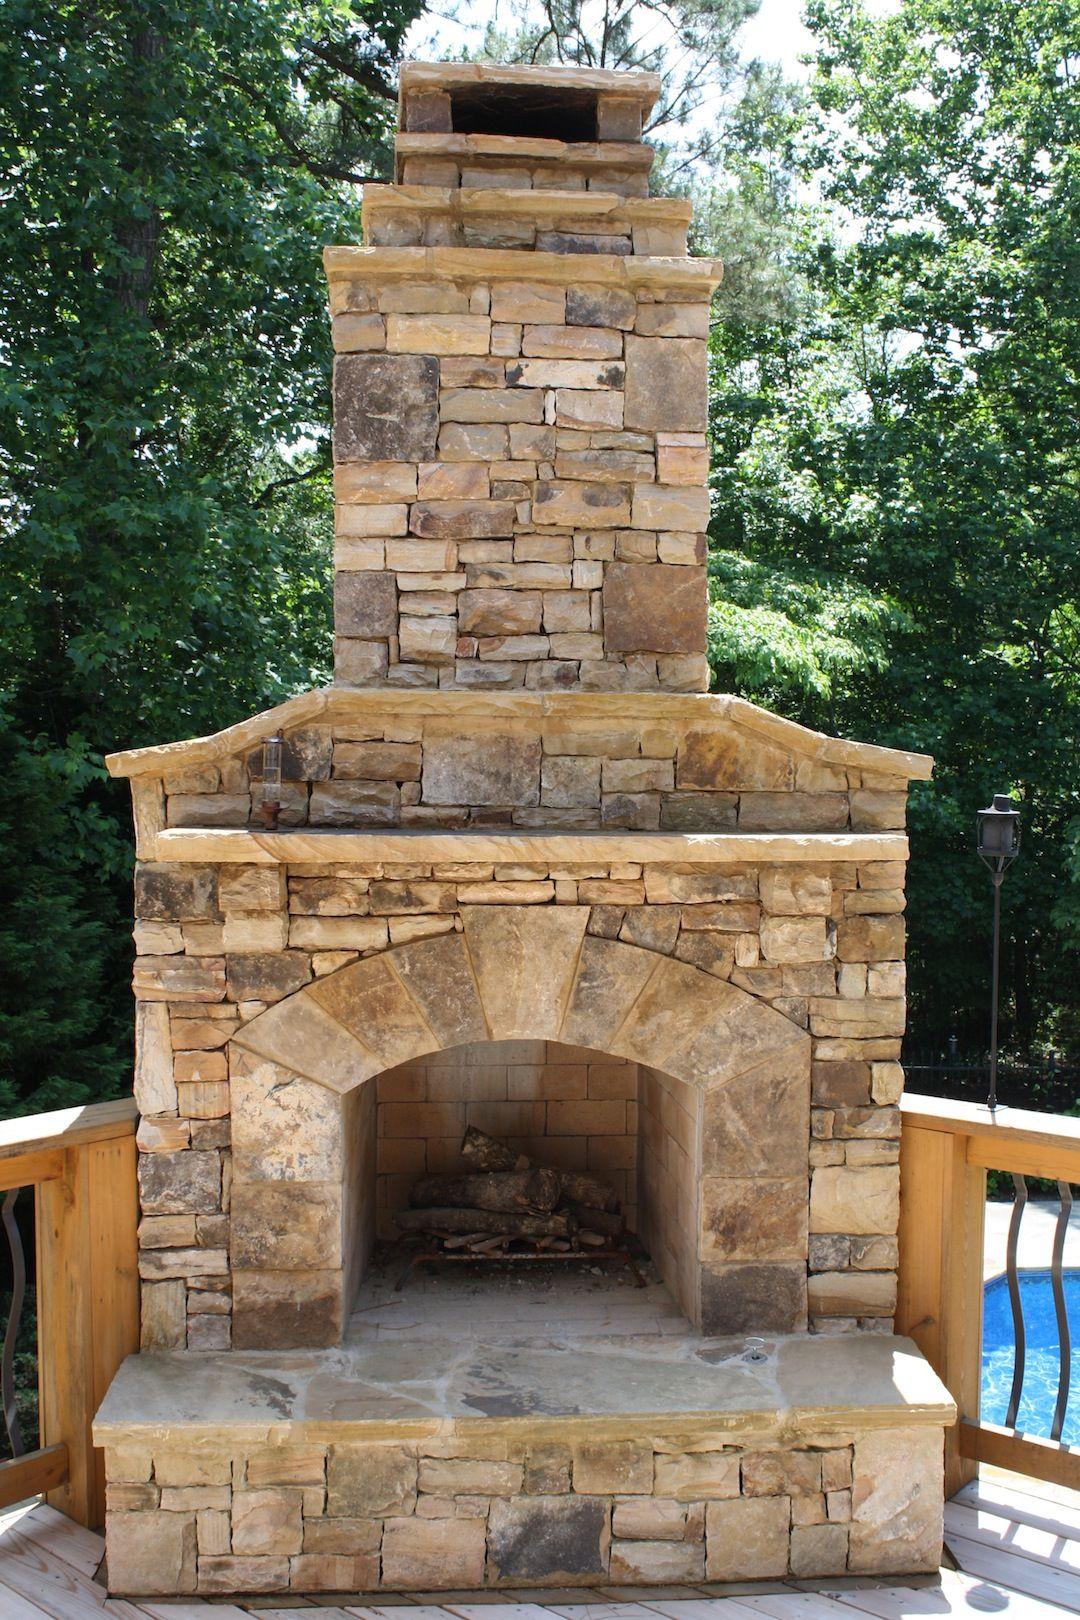 Outdoor Stone Fireplace on Wood Deck - Outdoor Stone Fireplace On Wood Deck Pool Heaters Pinterest